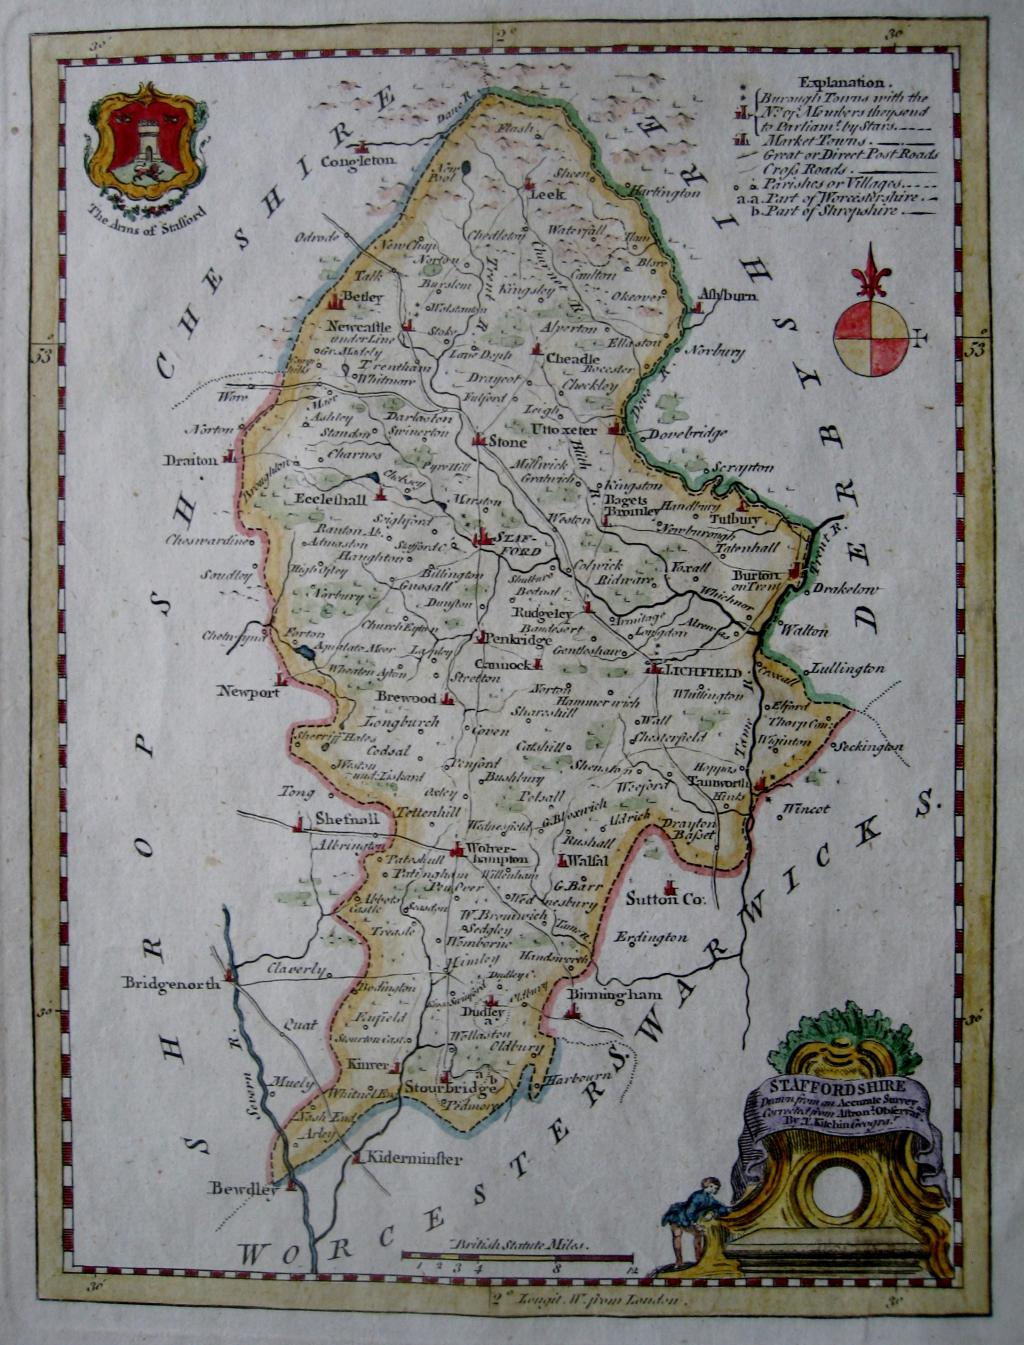 STAFFORDSHIRE by THOMAS KITCHIN c1780